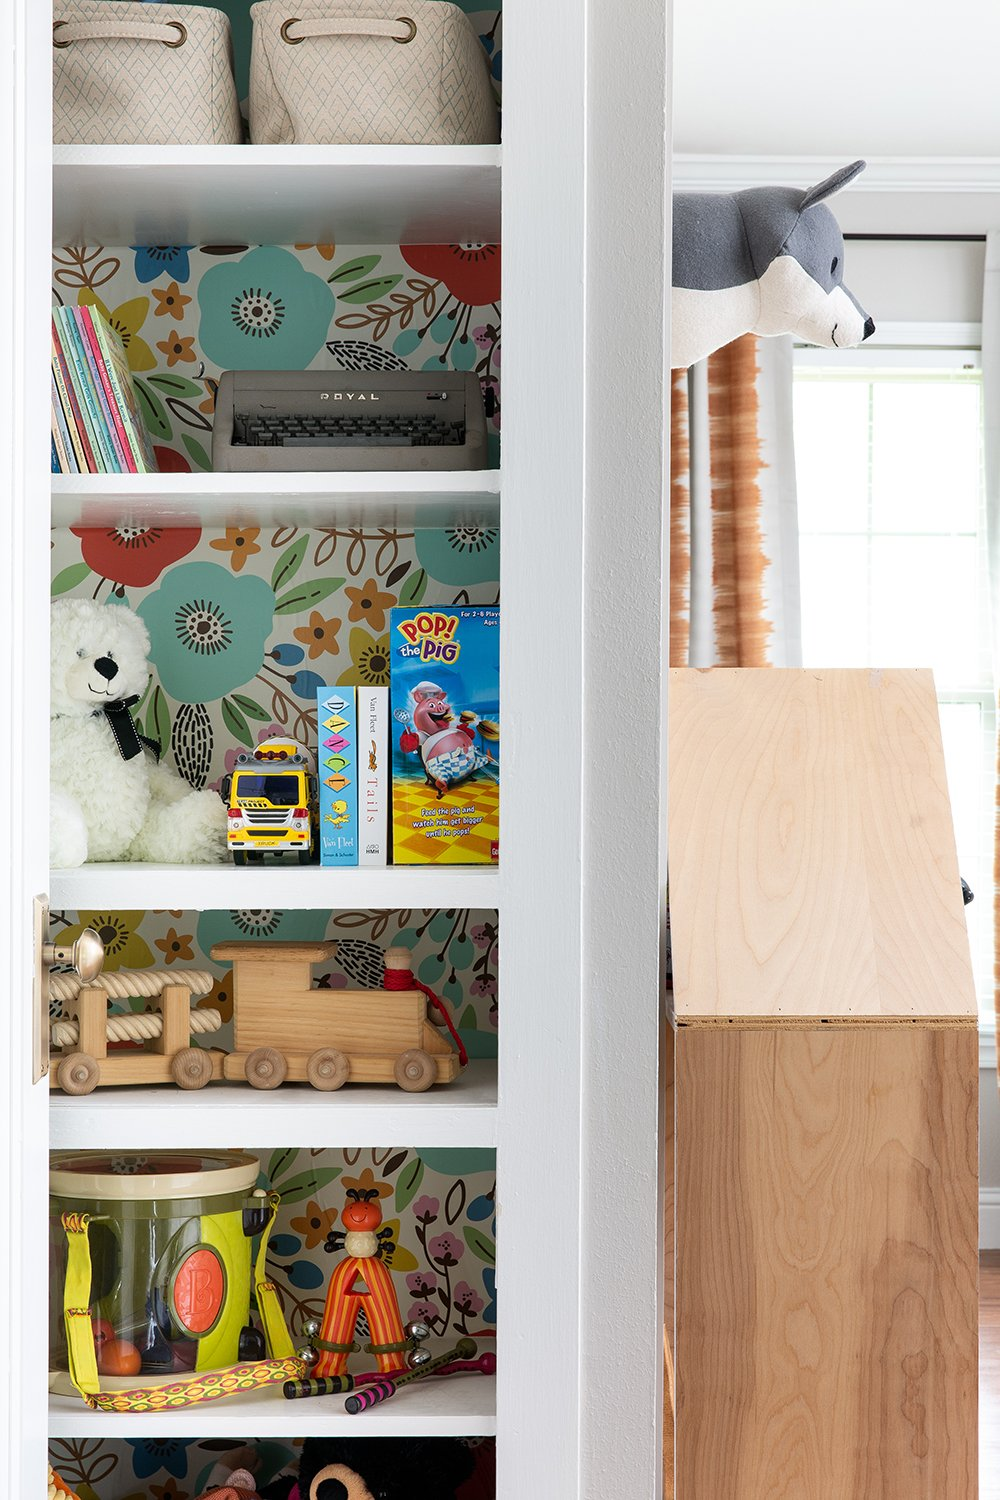 A built-in bookshelf with wallpaper by interior designer Lesley Myrick